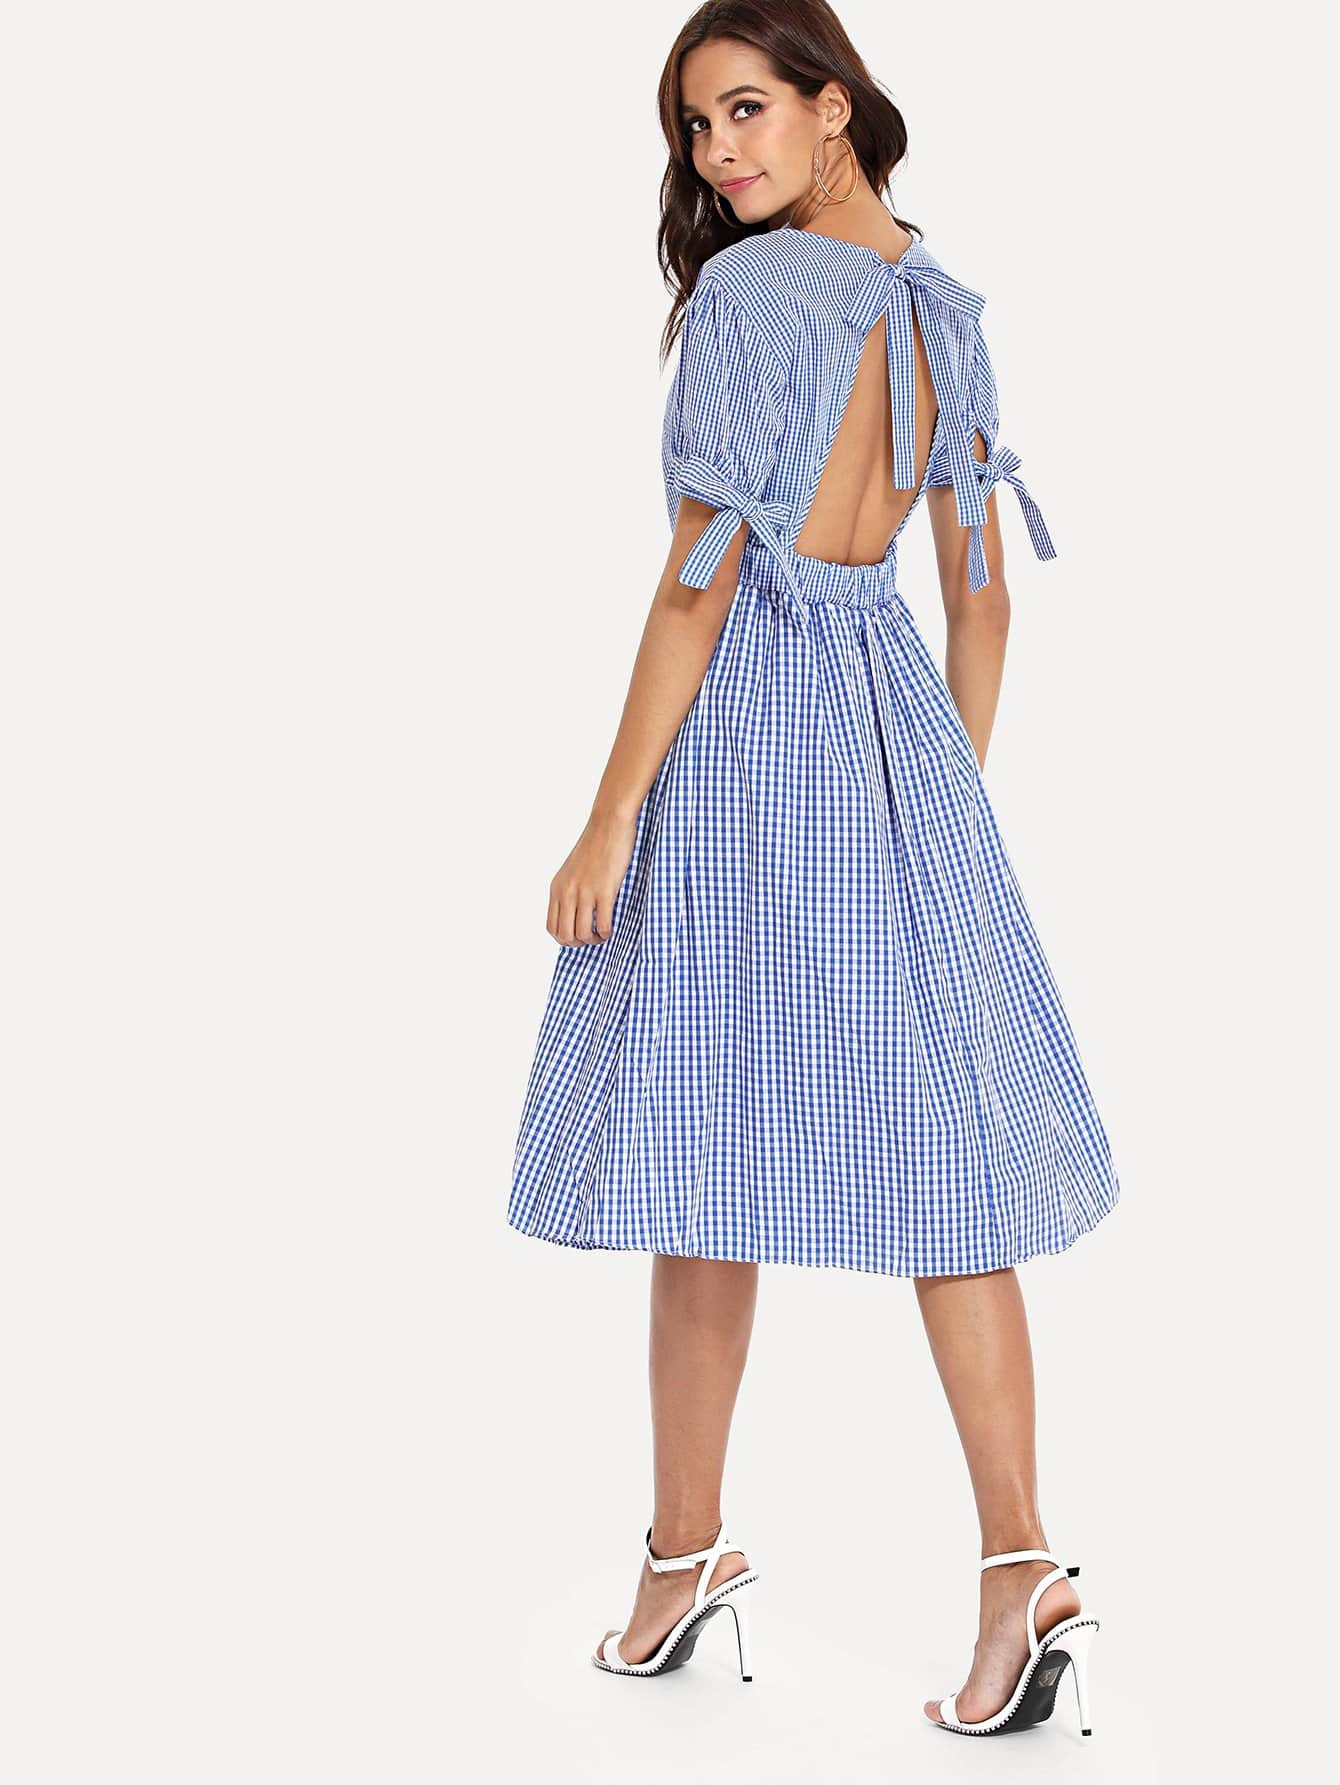 Bow Tie Detail Backless Plaid Dress bow detail longline dress